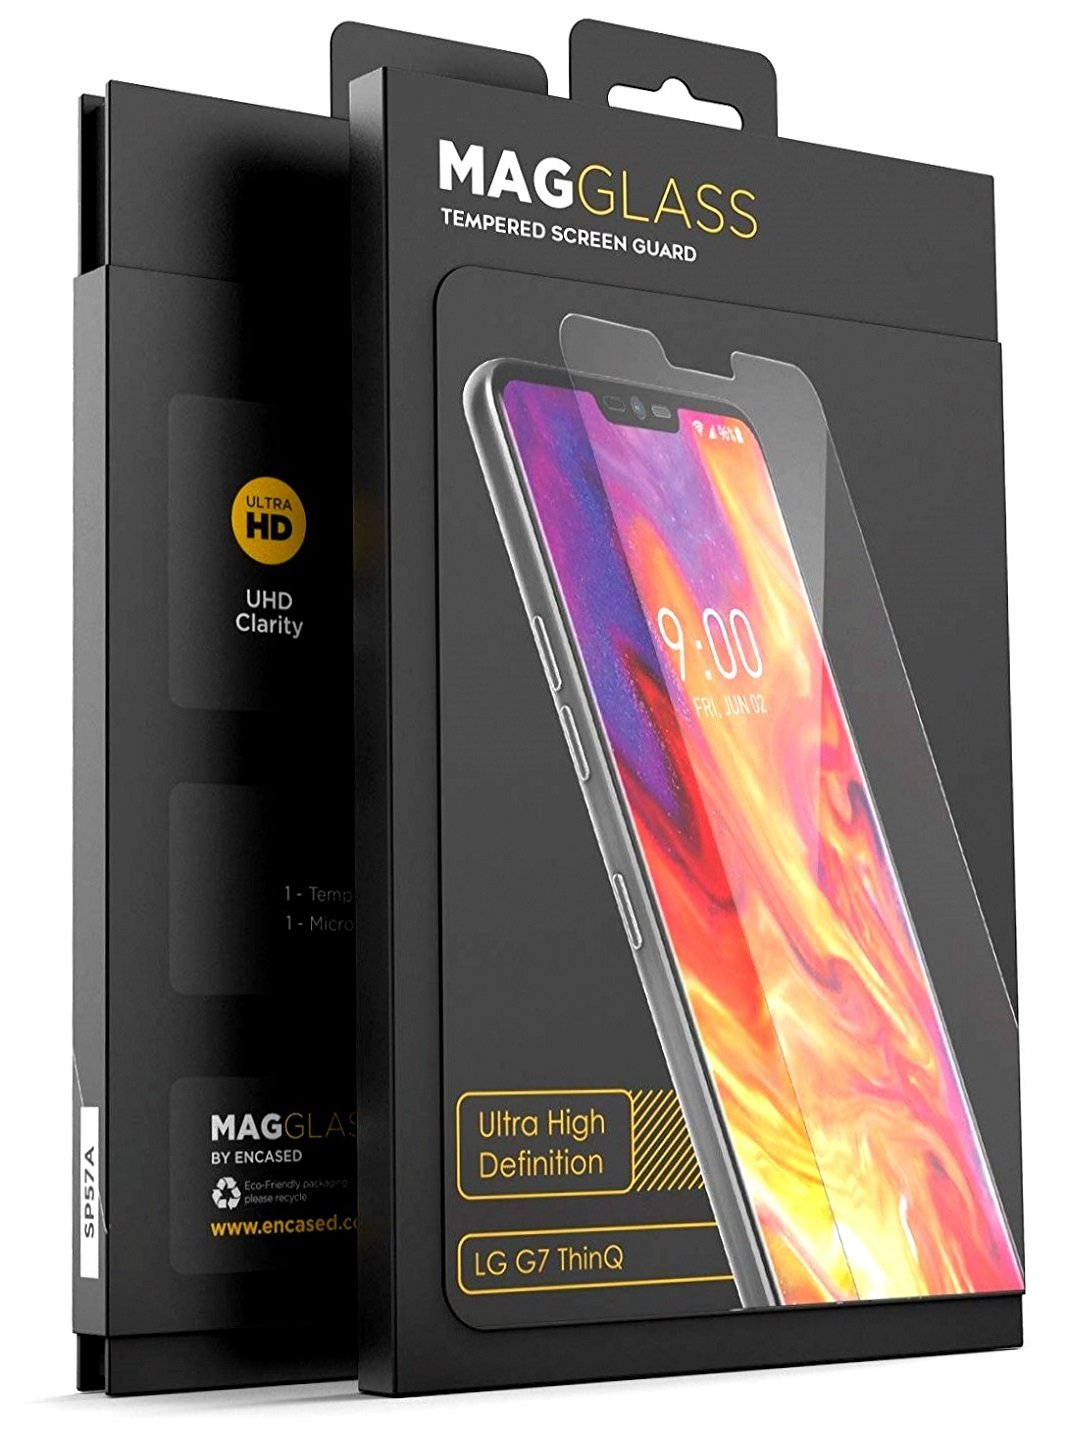 Magglass (Case Compatible) LG G7 ThinQ Tempered Glass Screen Protector (XT90 Scratchproof/Shatterproof) Ultra High Clear Definition Reinforced Screen Guard (Clear)